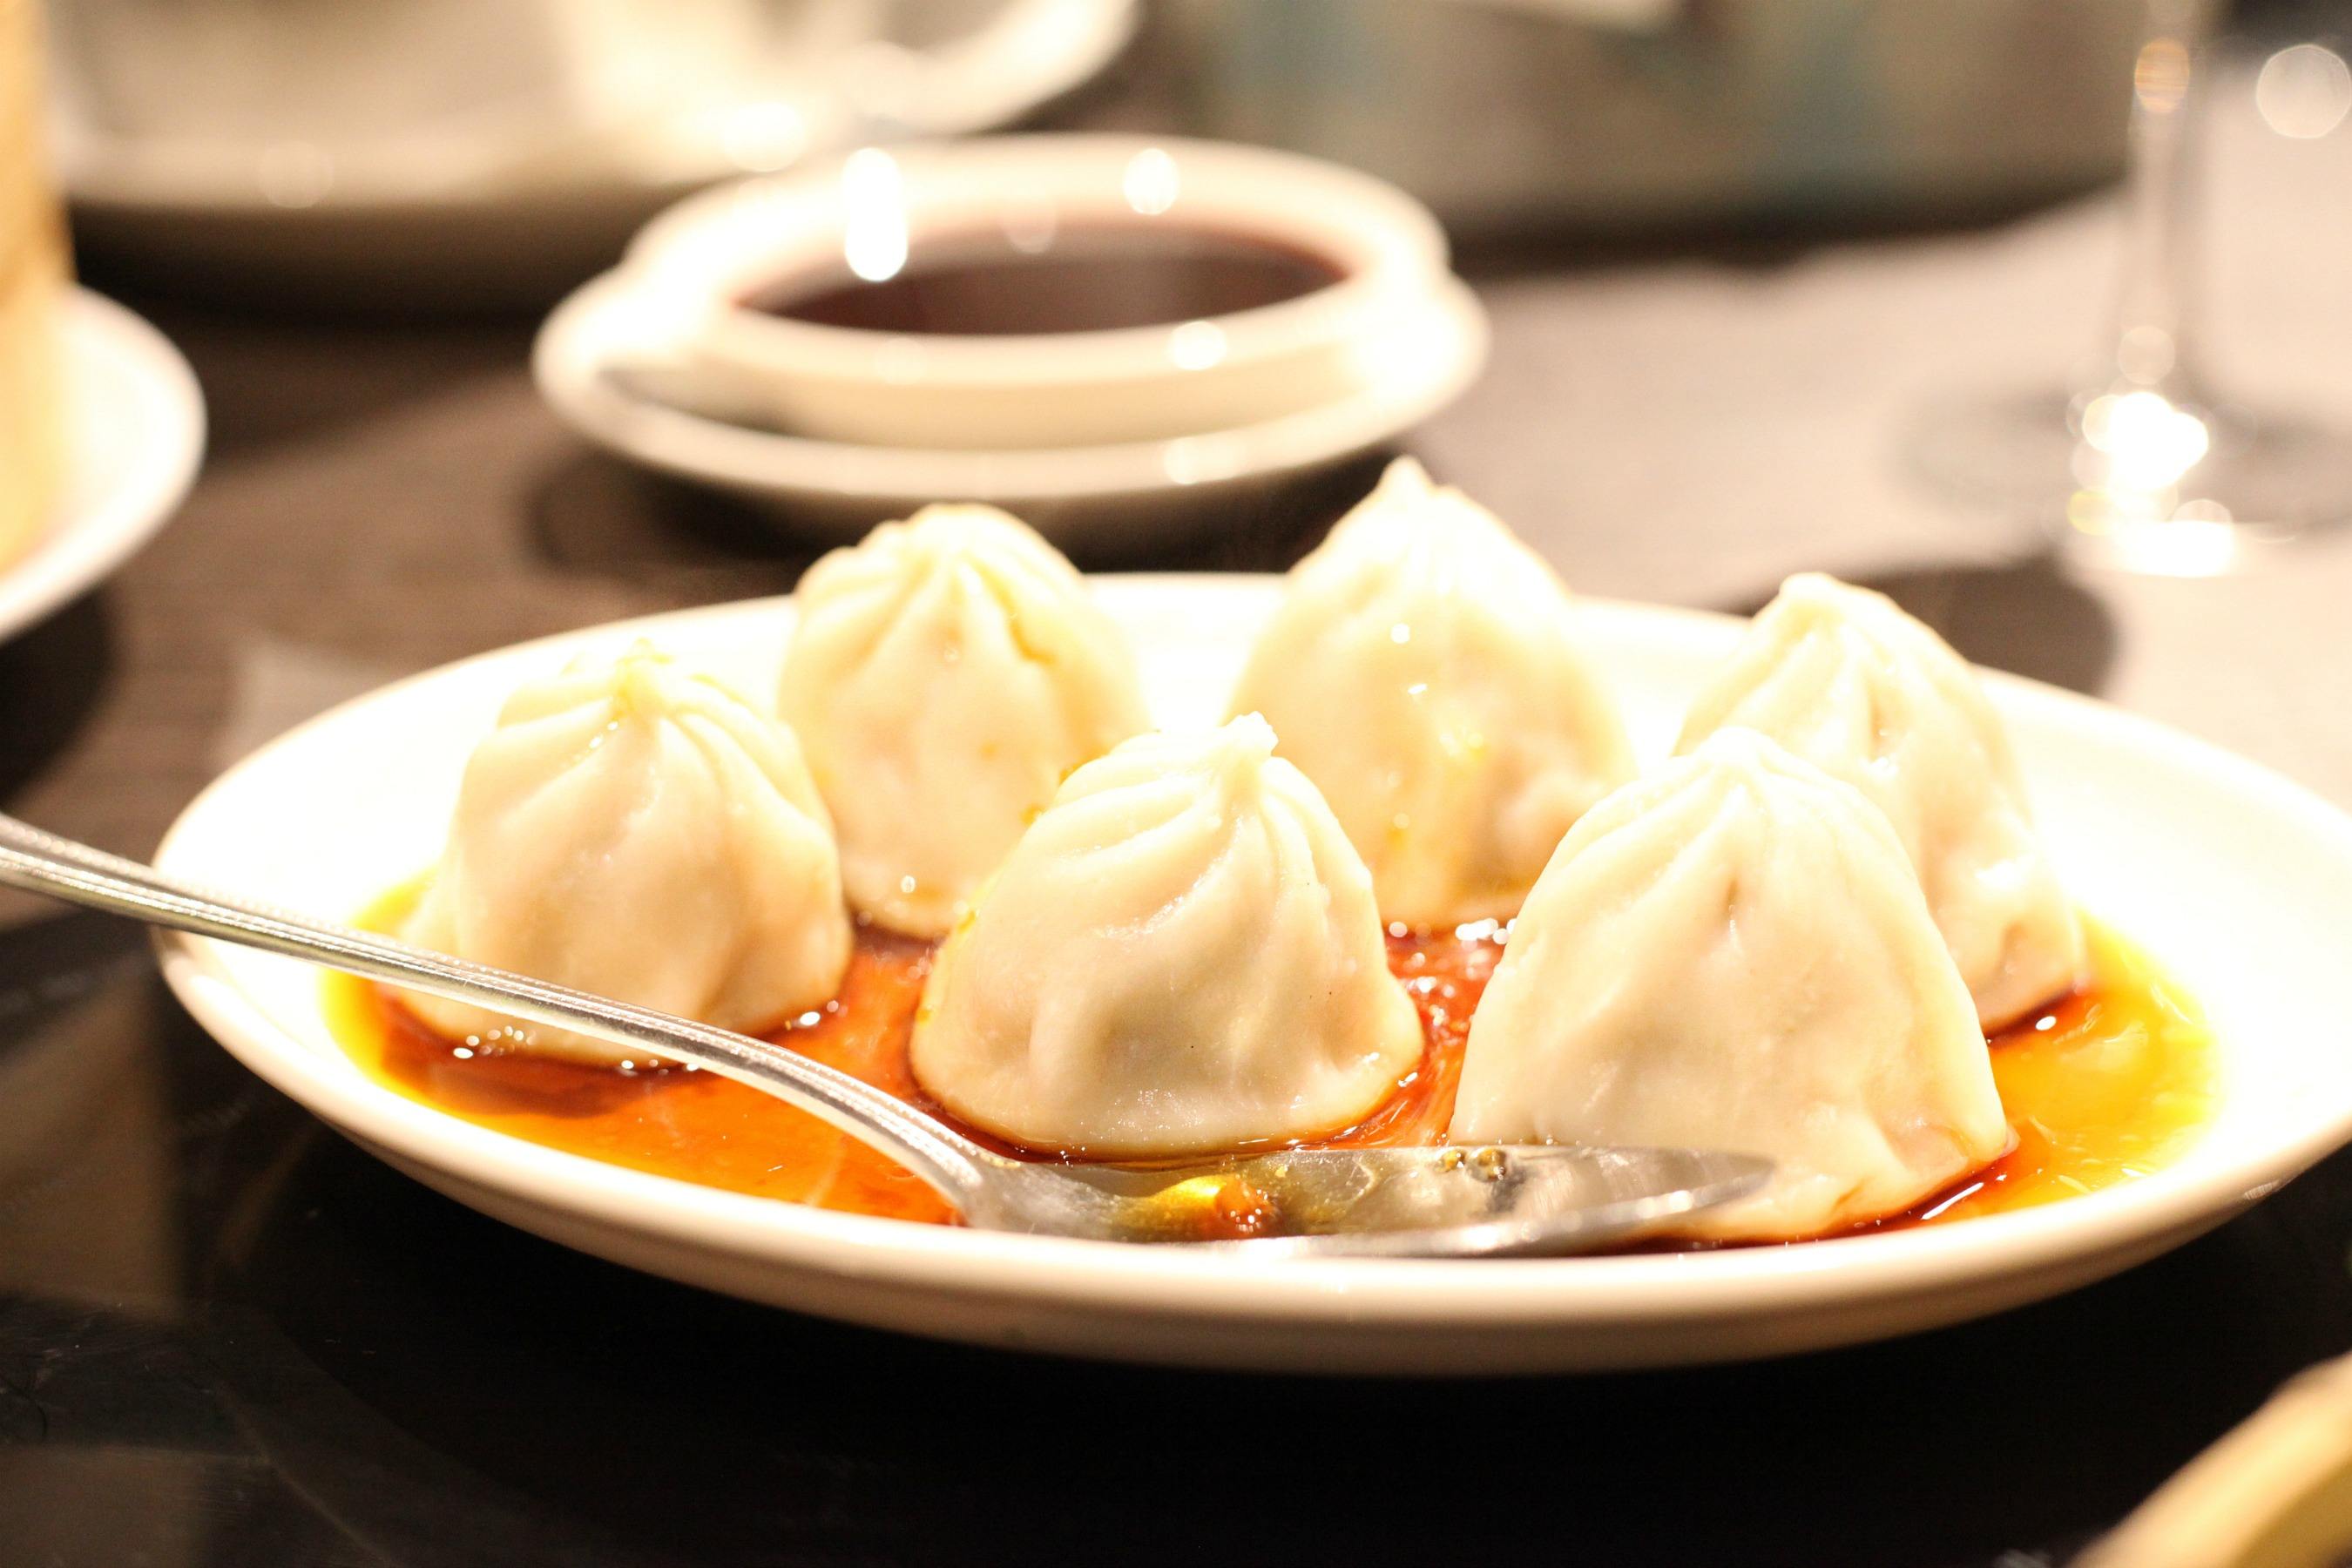 Spicy dumplings at Golden Dragon within Bang, Bang Oriental